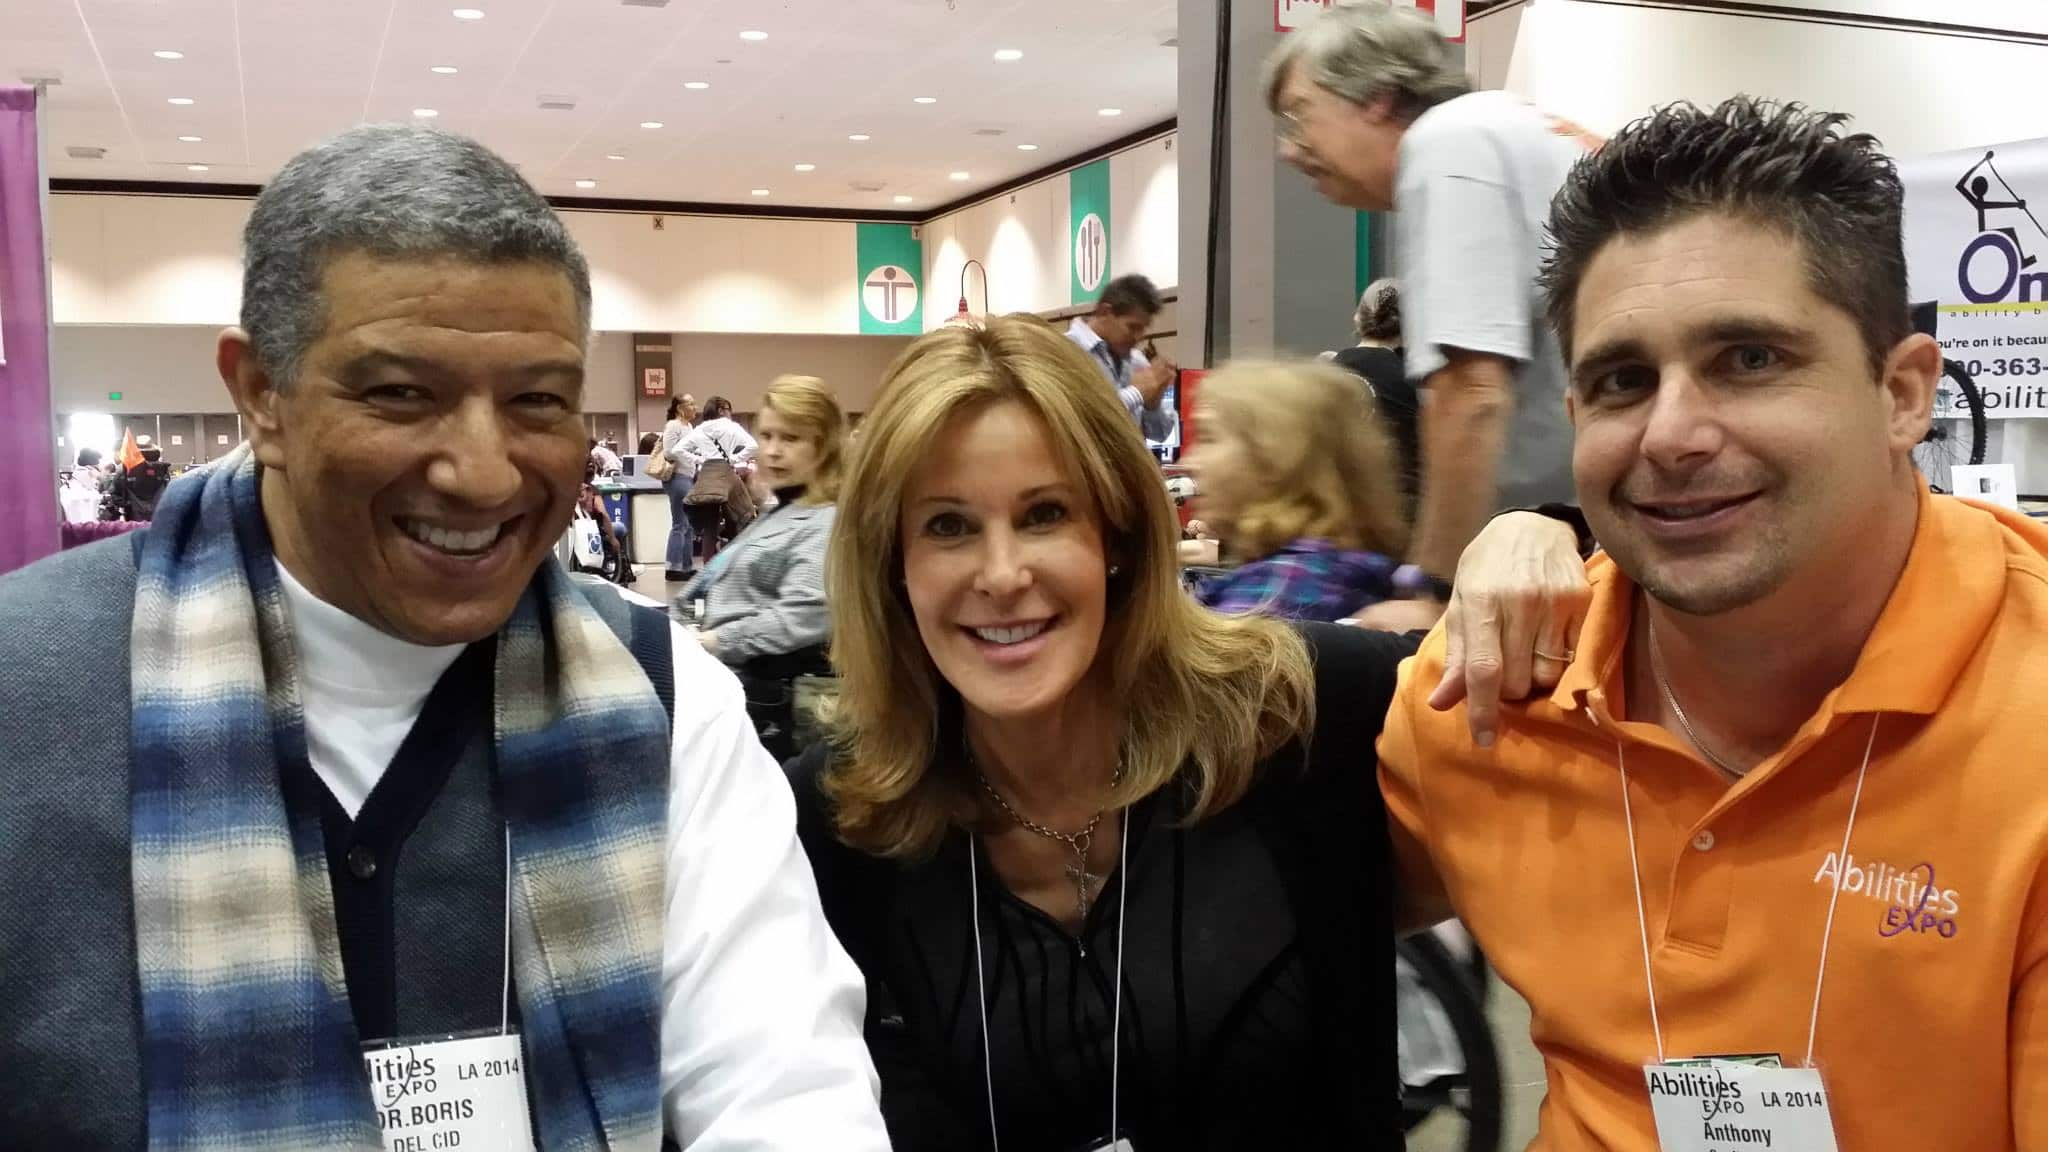 A man with Dr. Boris on a name tag next to Mayra Fornos and Anthony Orefice at Abilities Expo.